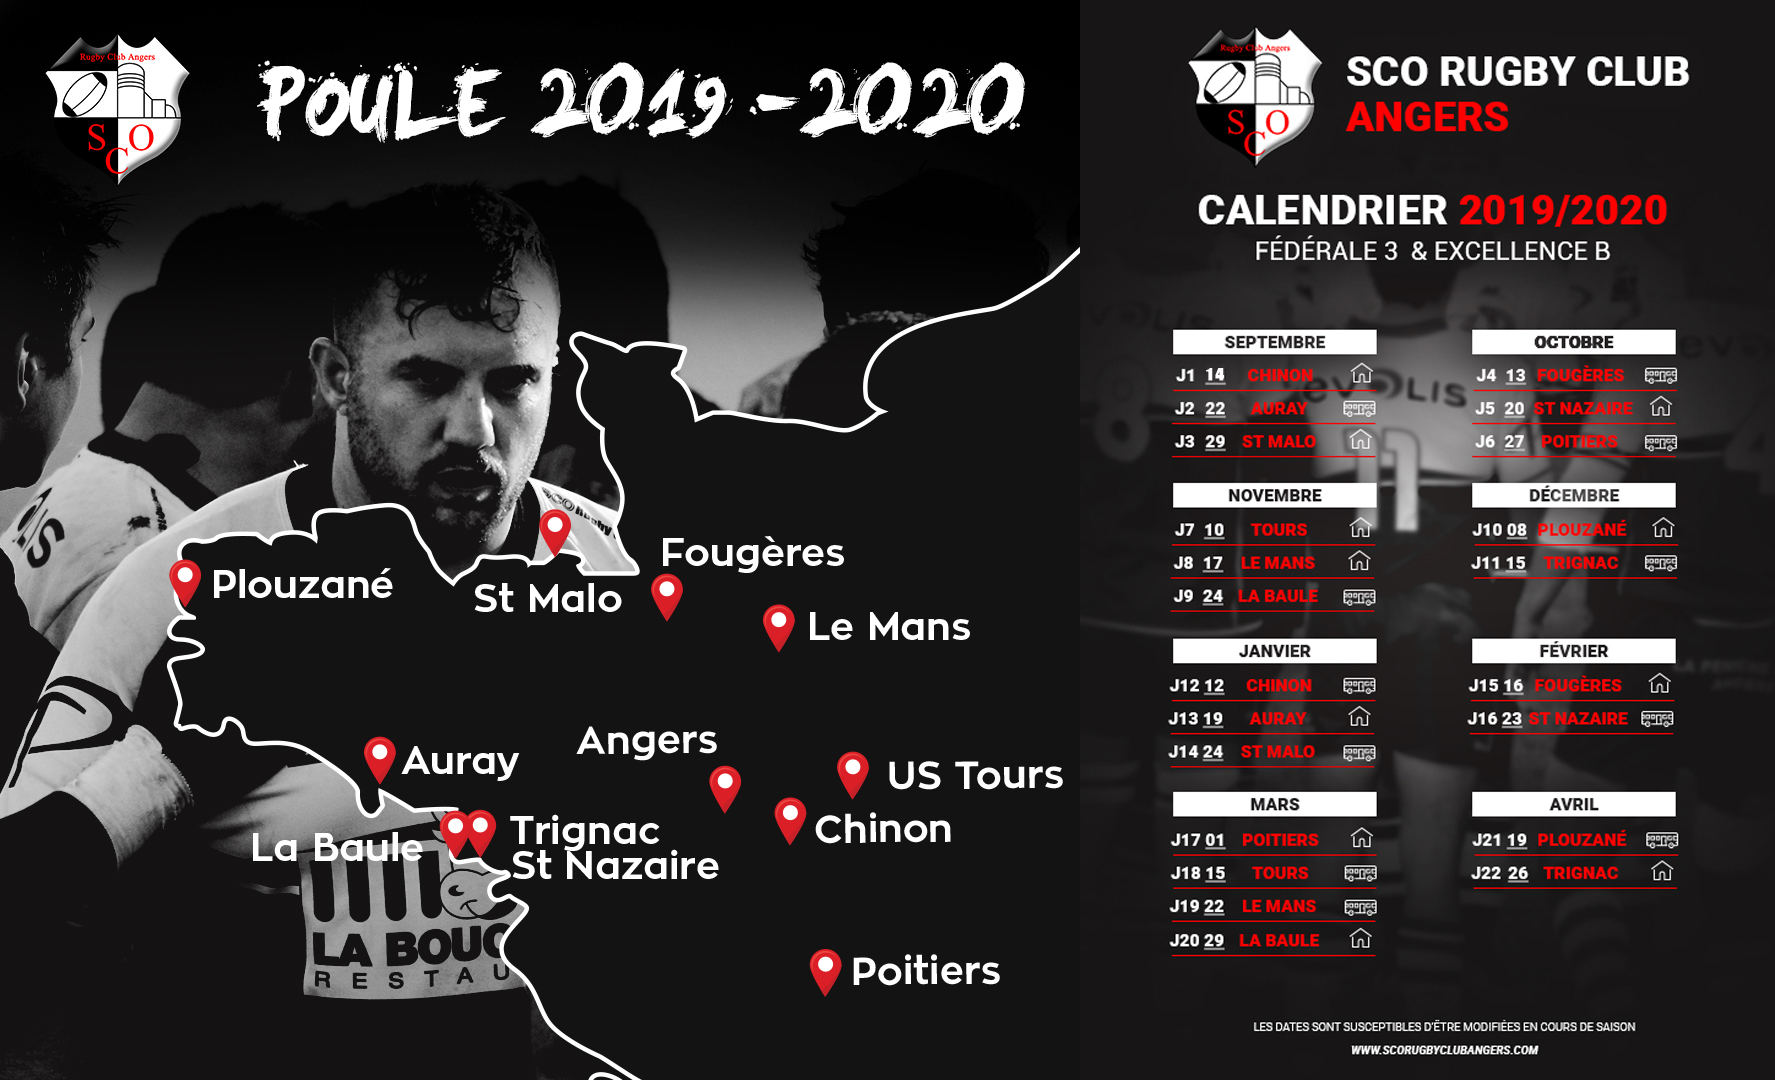 Photo poule et calendrier seniors 2019 2020